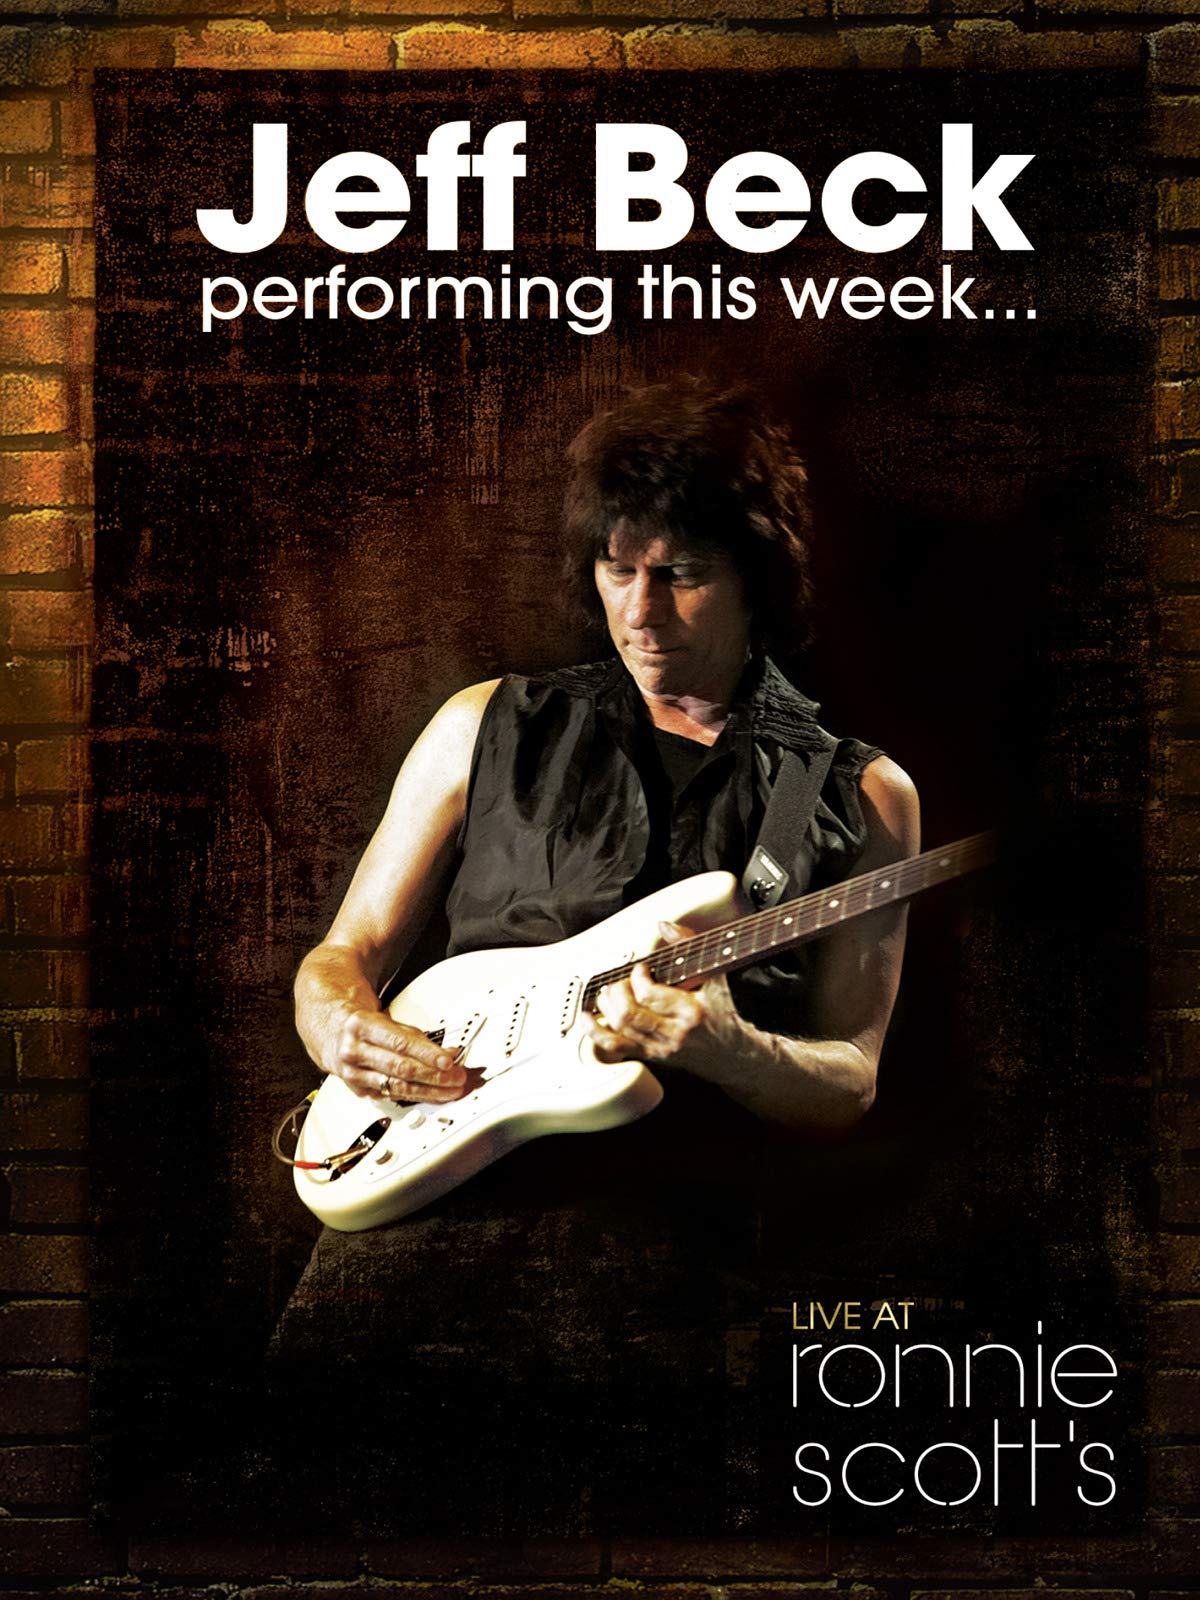 Jeff Beck - Performing This Week. Live At Ronnie Scott's